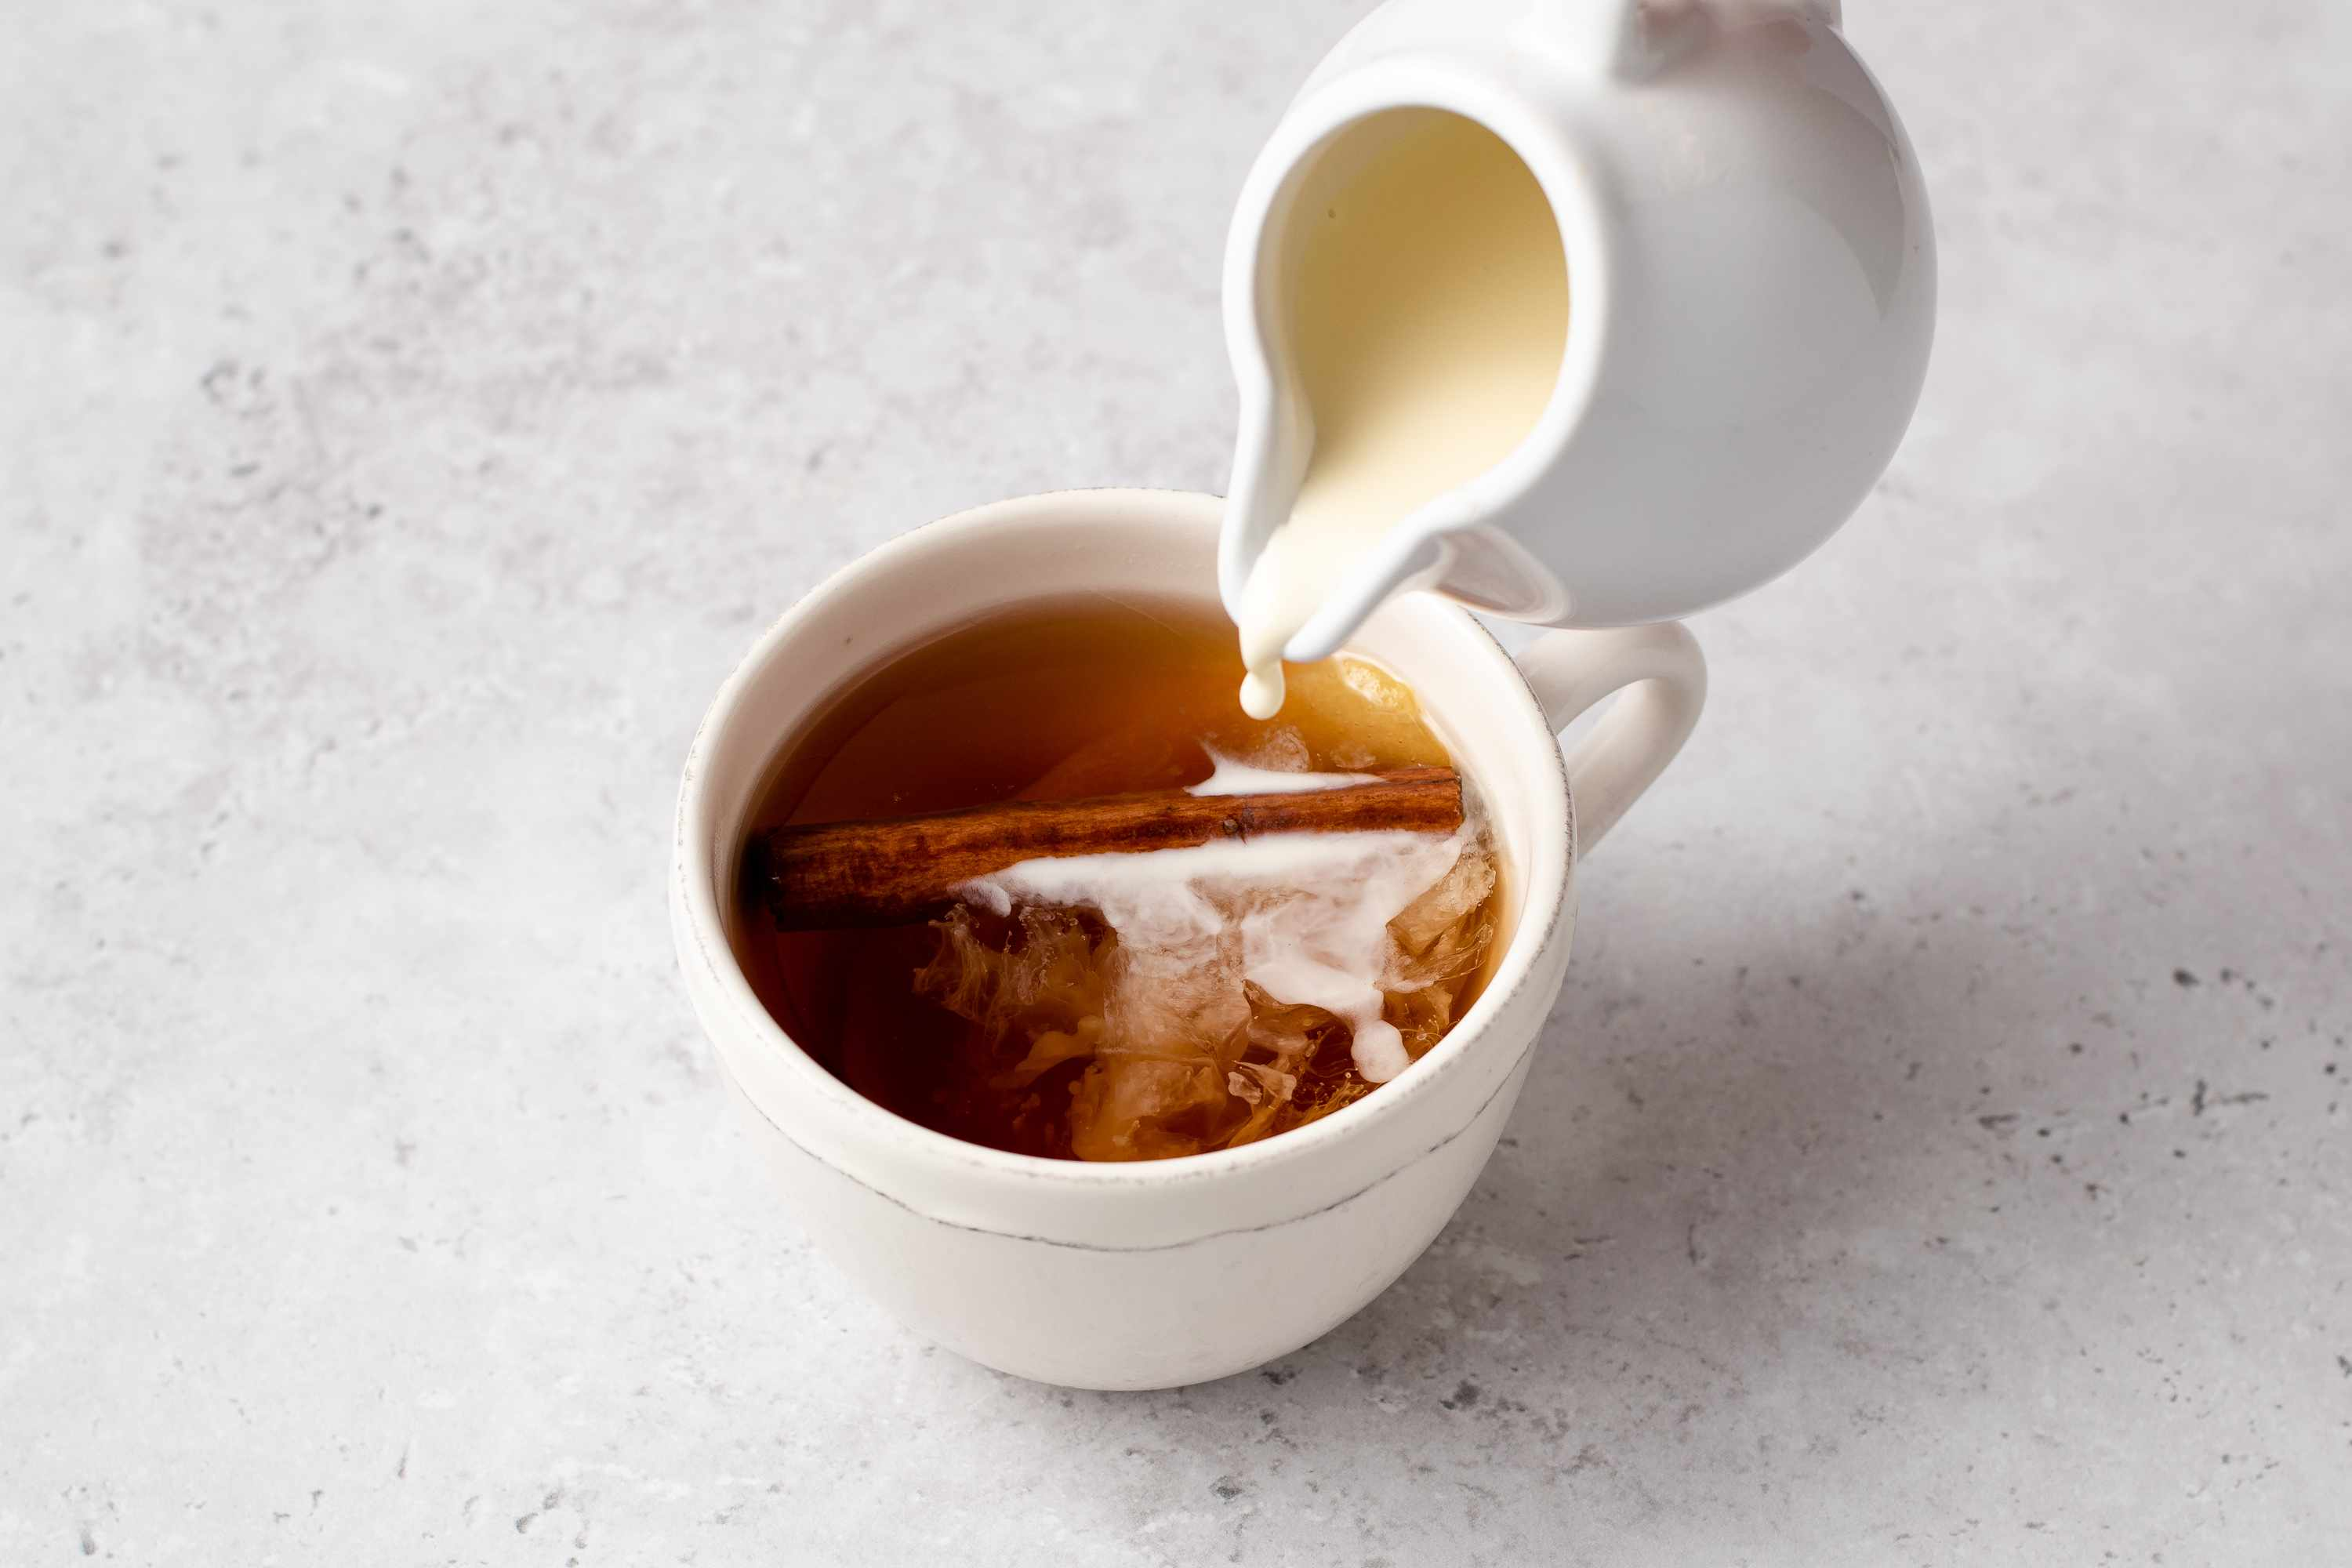 add cream to the tea in the cup